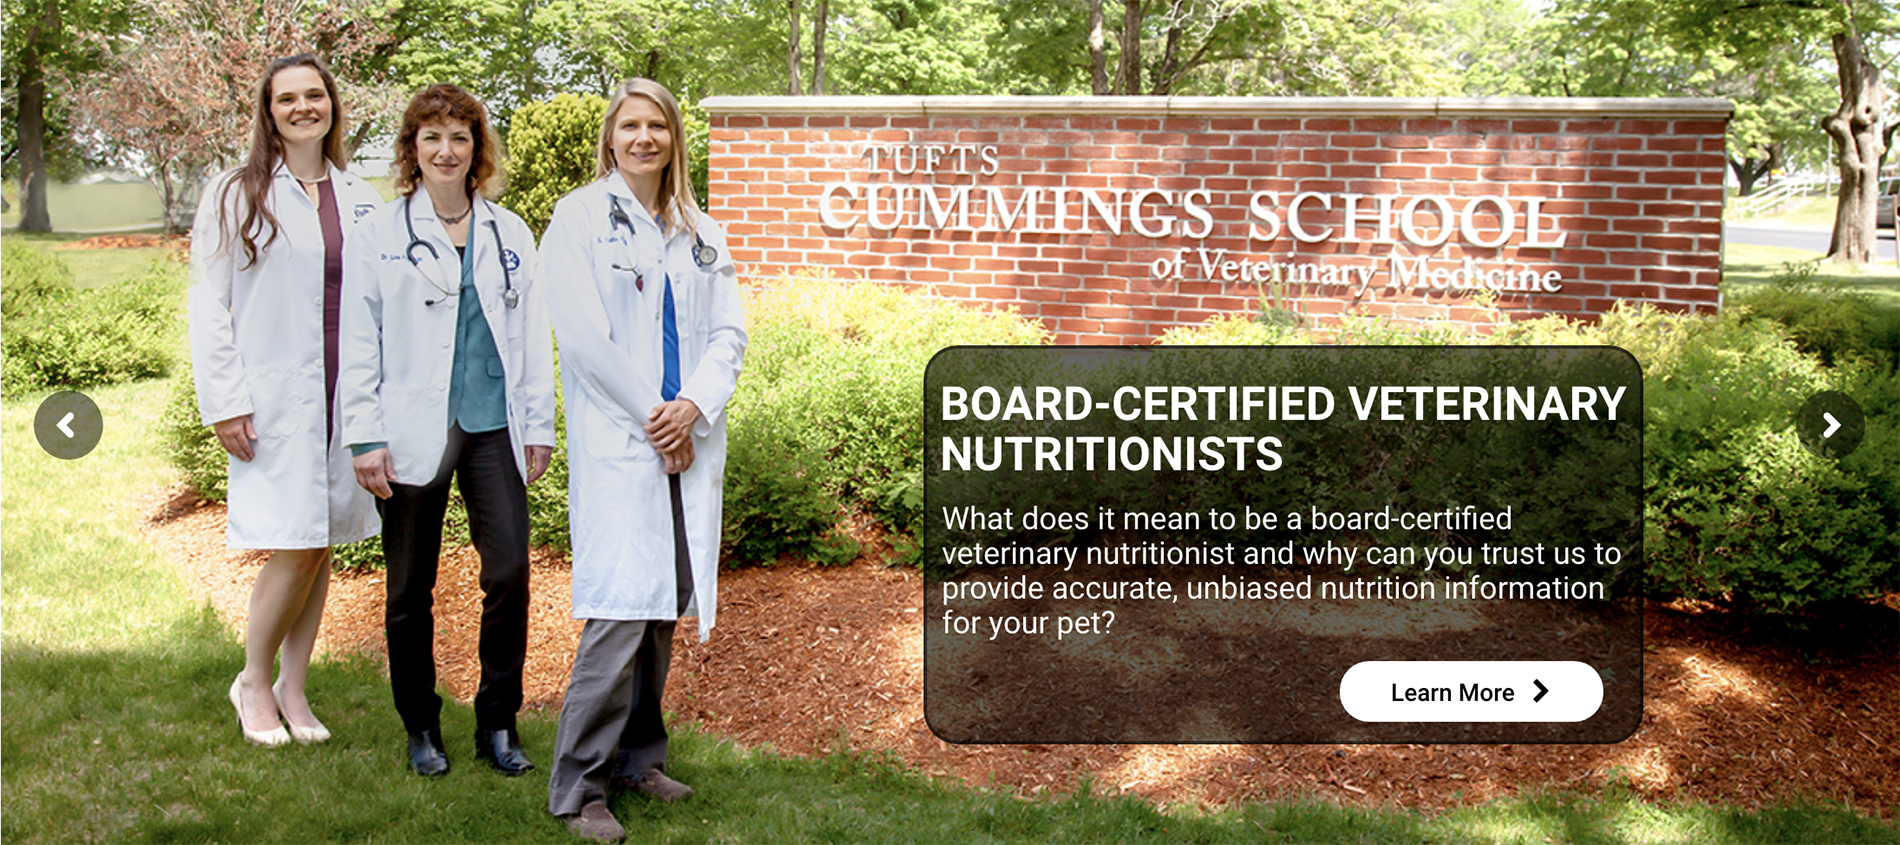 Photo of veterinary nutritionists at Cummings School